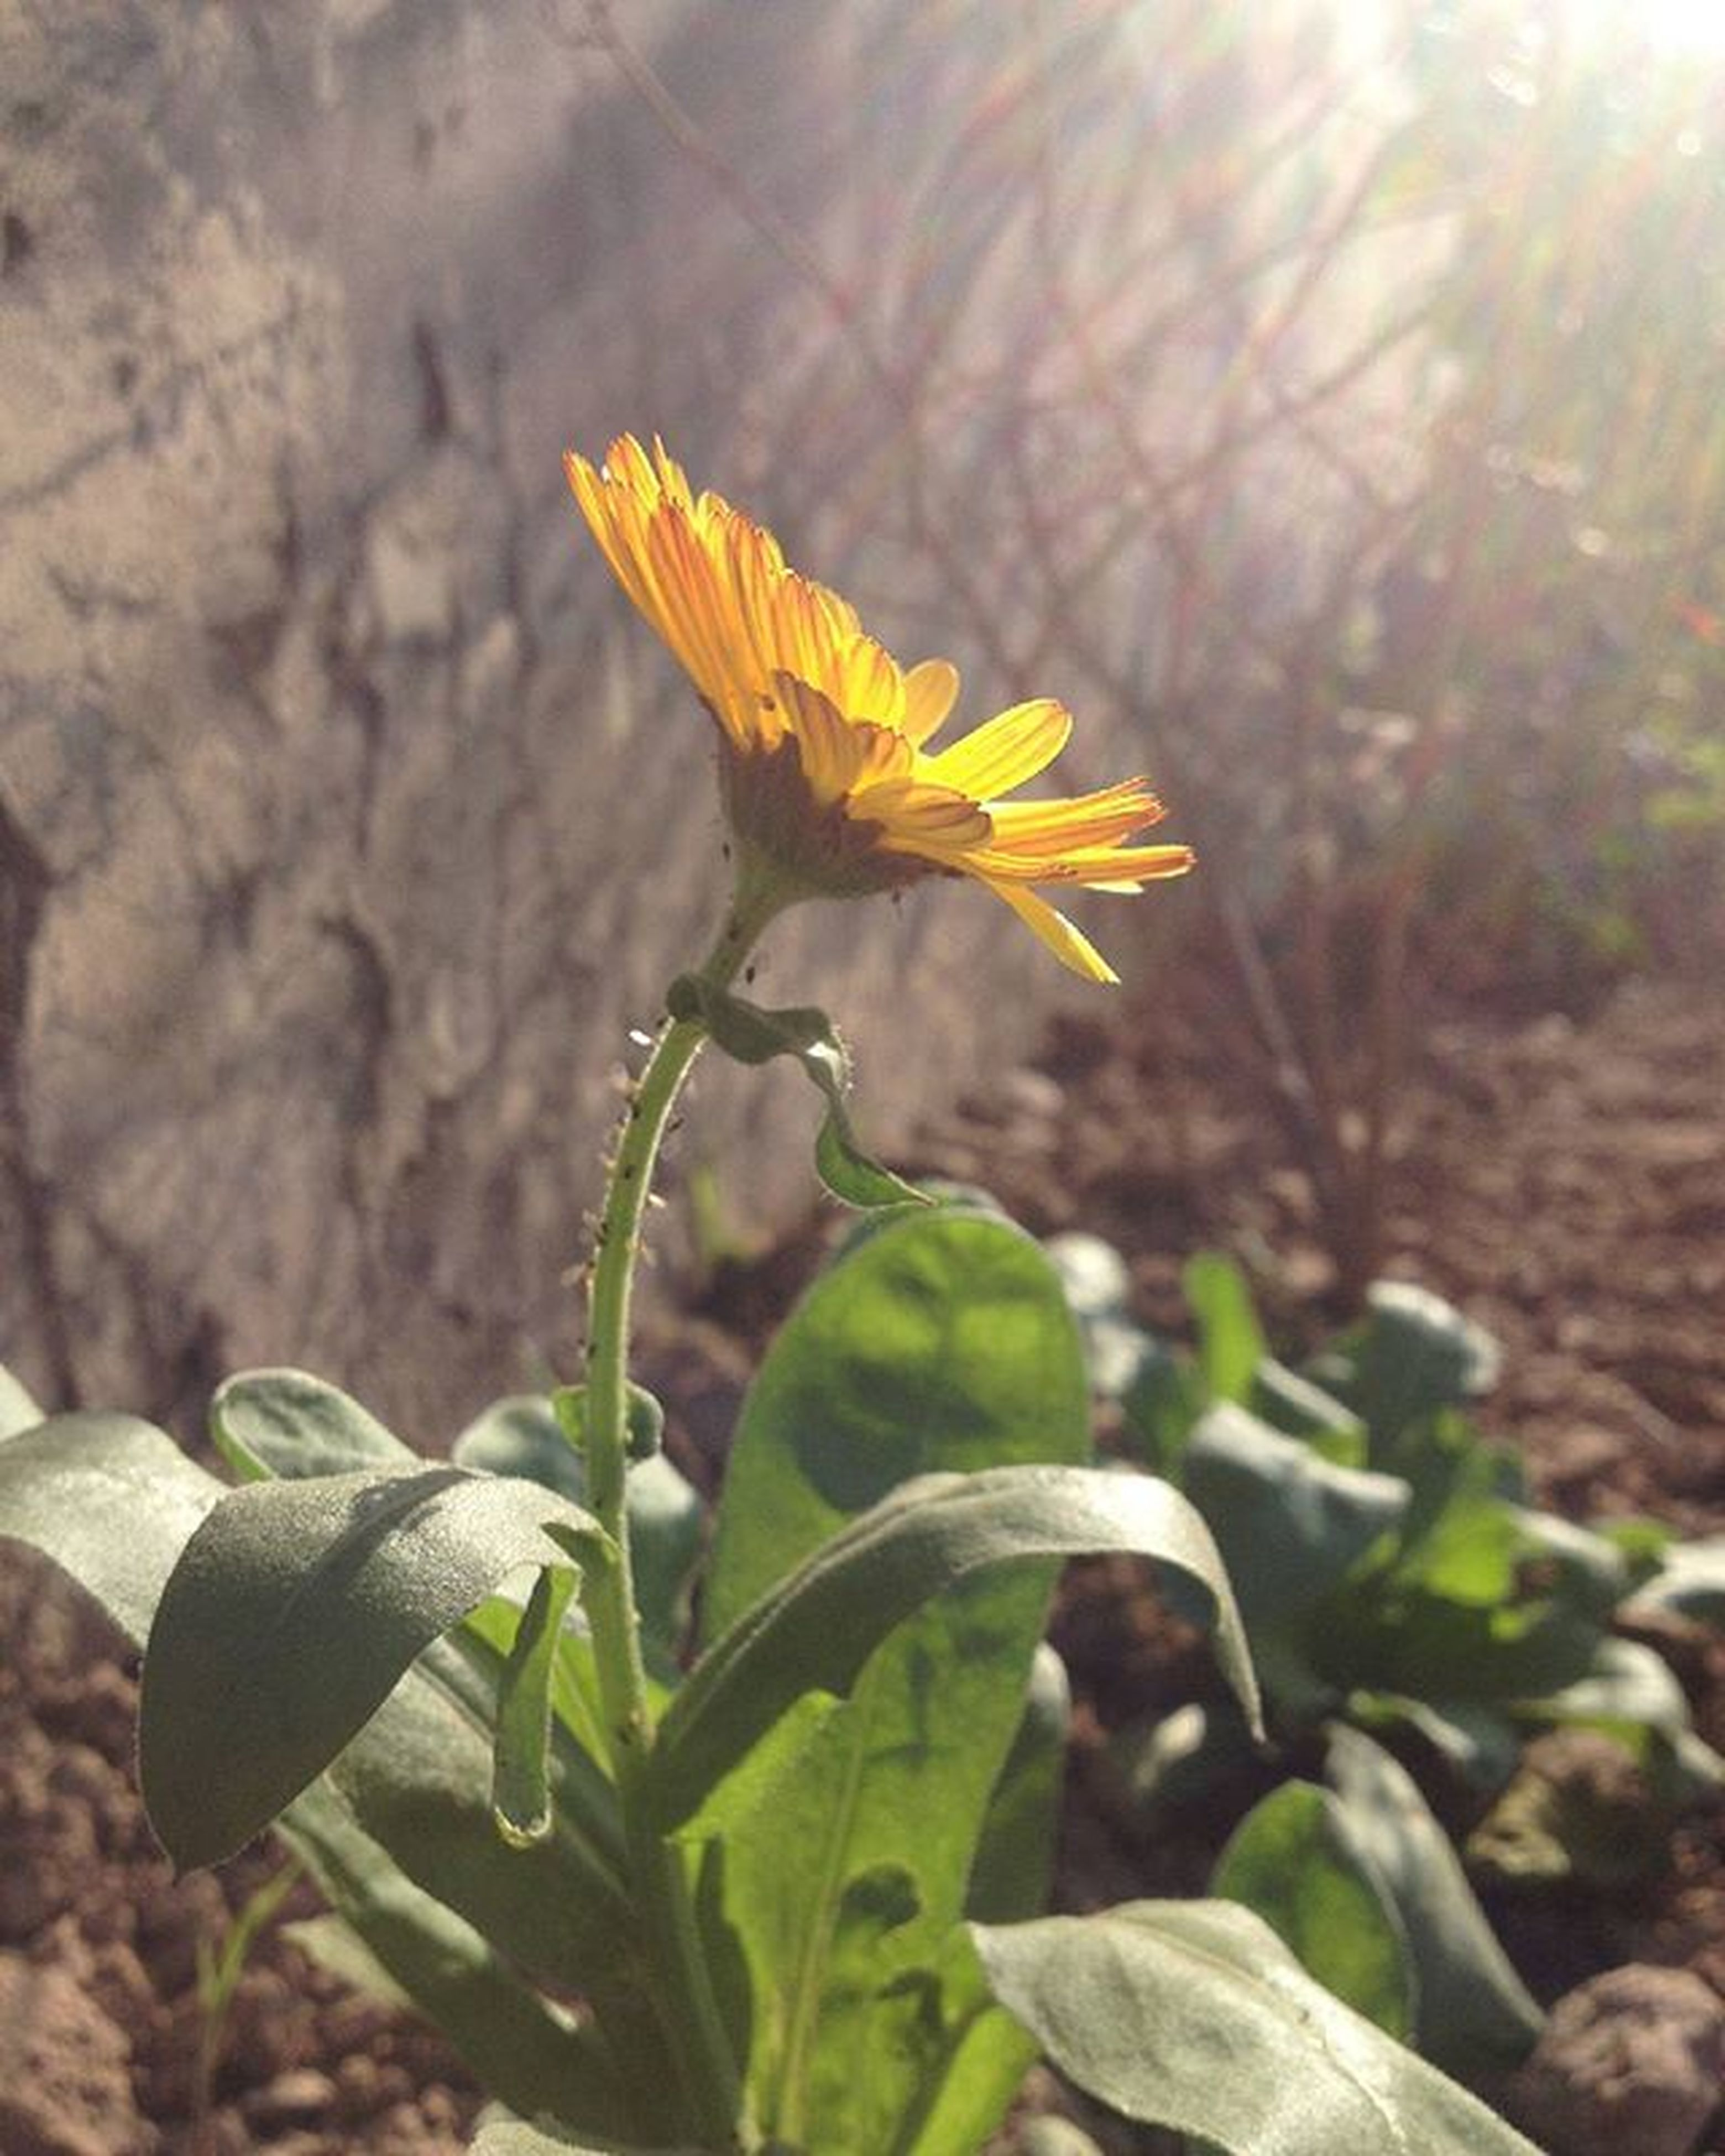 flower, leaf, growth, fragility, plant, petal, focus on foreground, nature, freshness, close-up, yellow, beauty in nature, stem, flower head, sunlight, day, outdoors, blooming, no people, botany